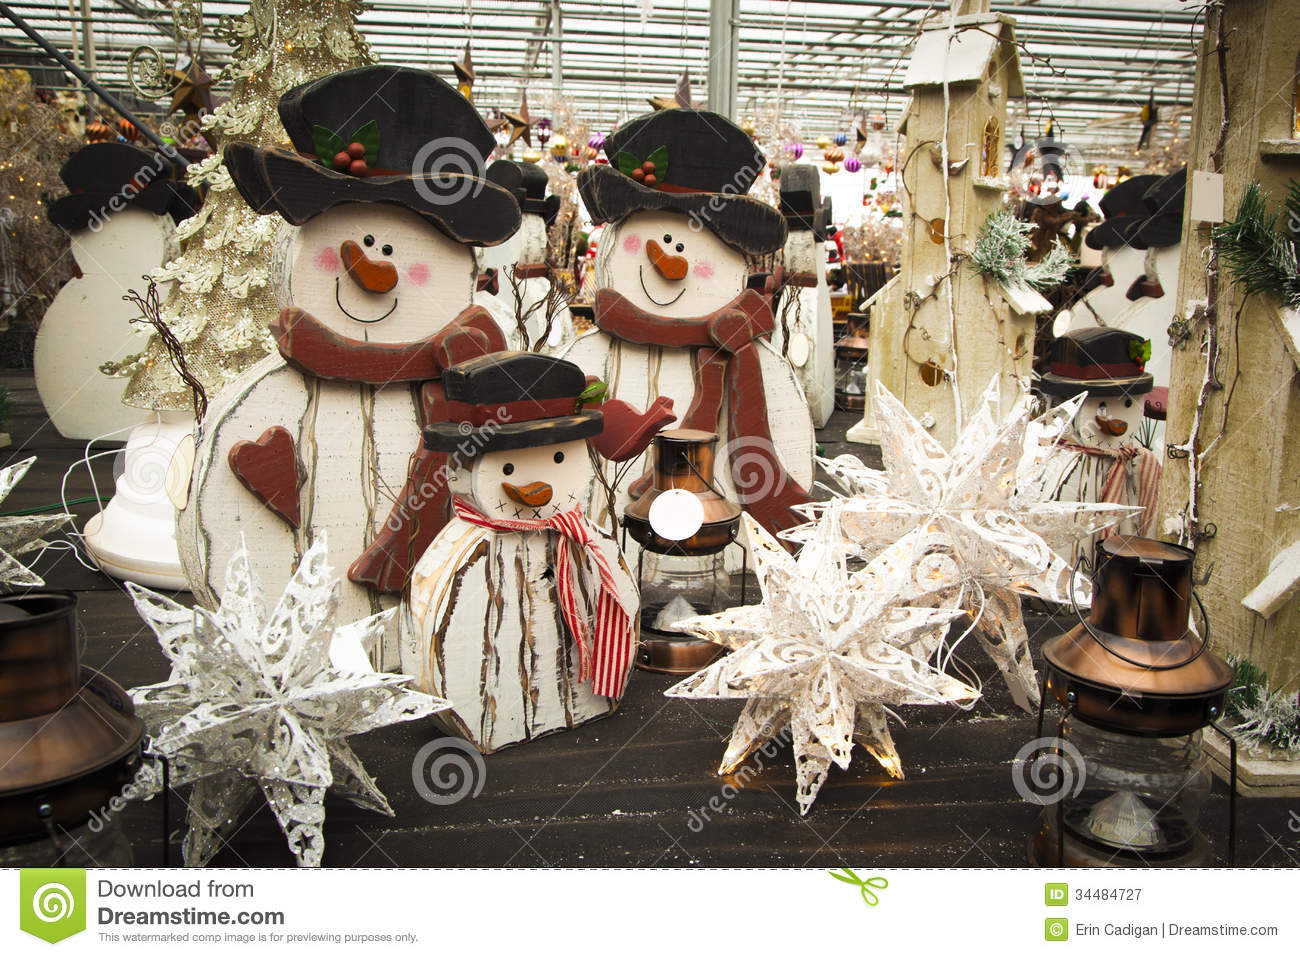 Christmas decorations for sale royalty free stock for Christmas sale items